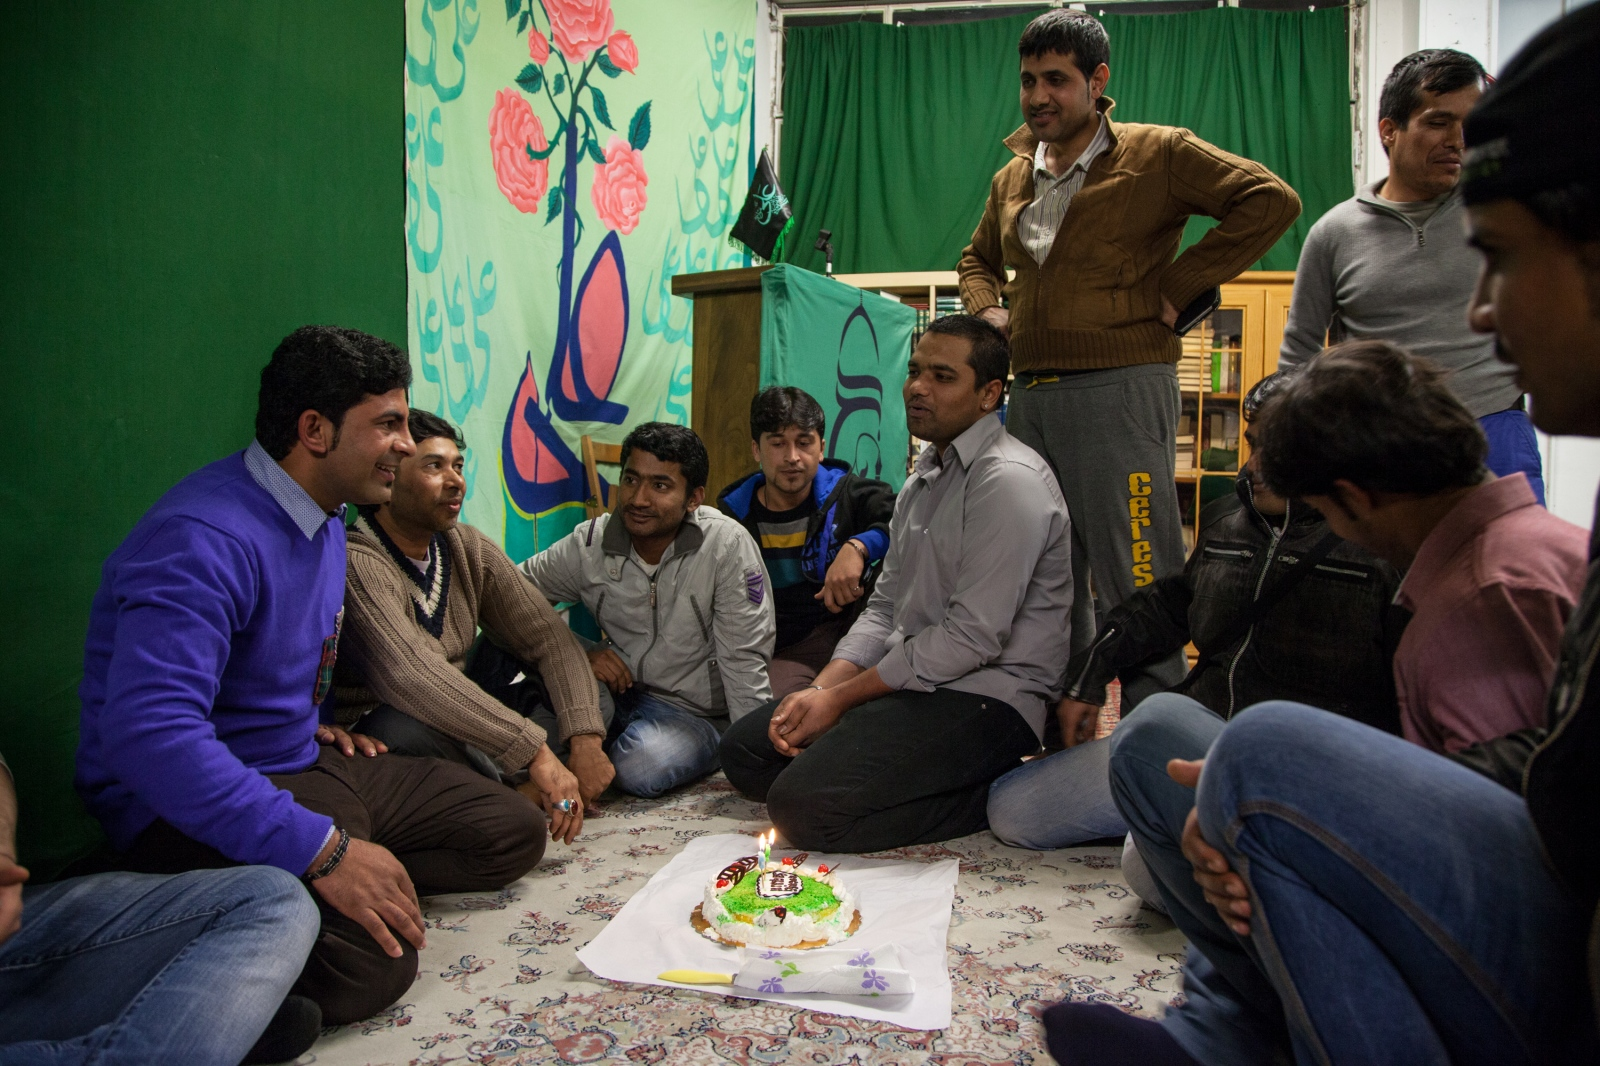 Shia Muslim gather for a birthday celebration at the Islamic Centre Imam Mahdi, near Furio Camillo, a neighborhood in the eastern part of Rome. This is the only Shia mosque in the city.